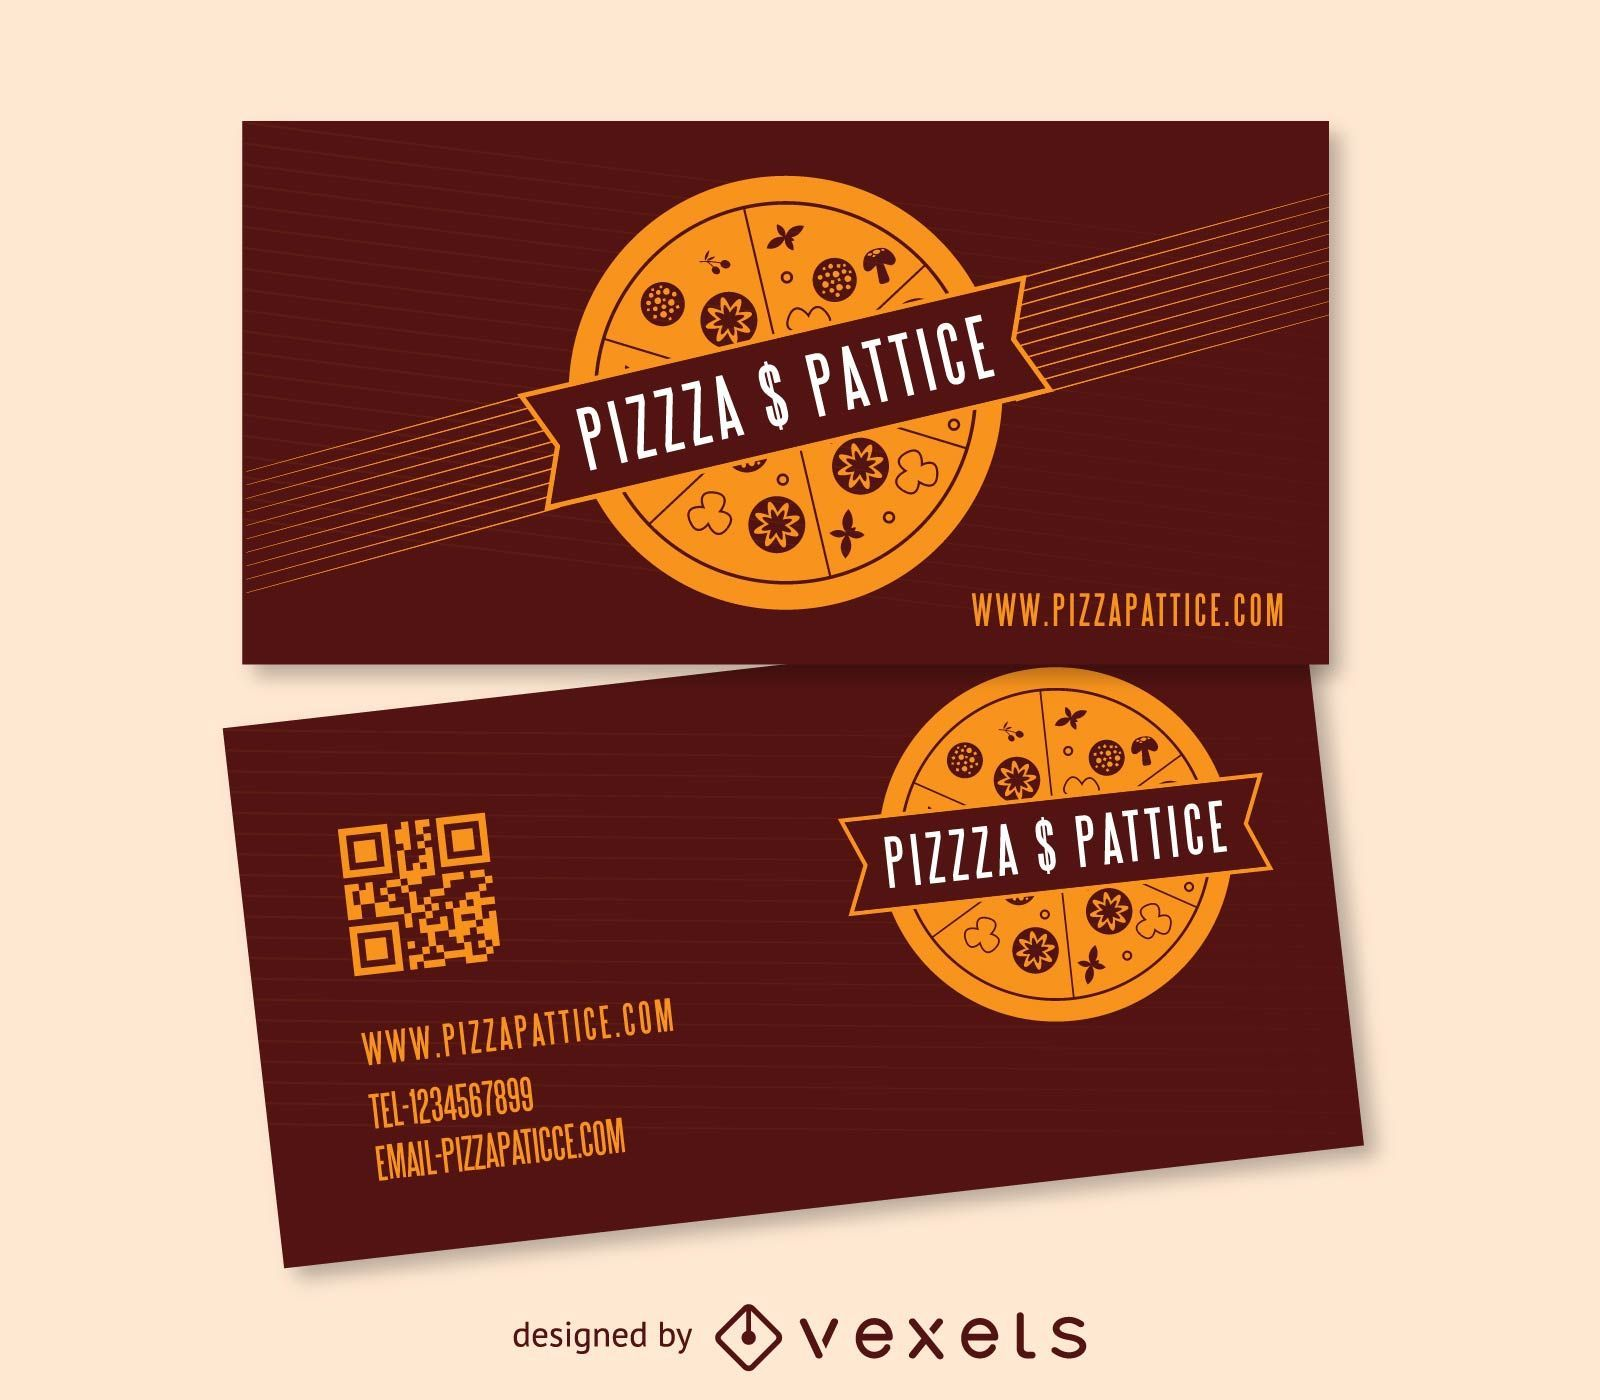 pizza pattice fast food business card vector download